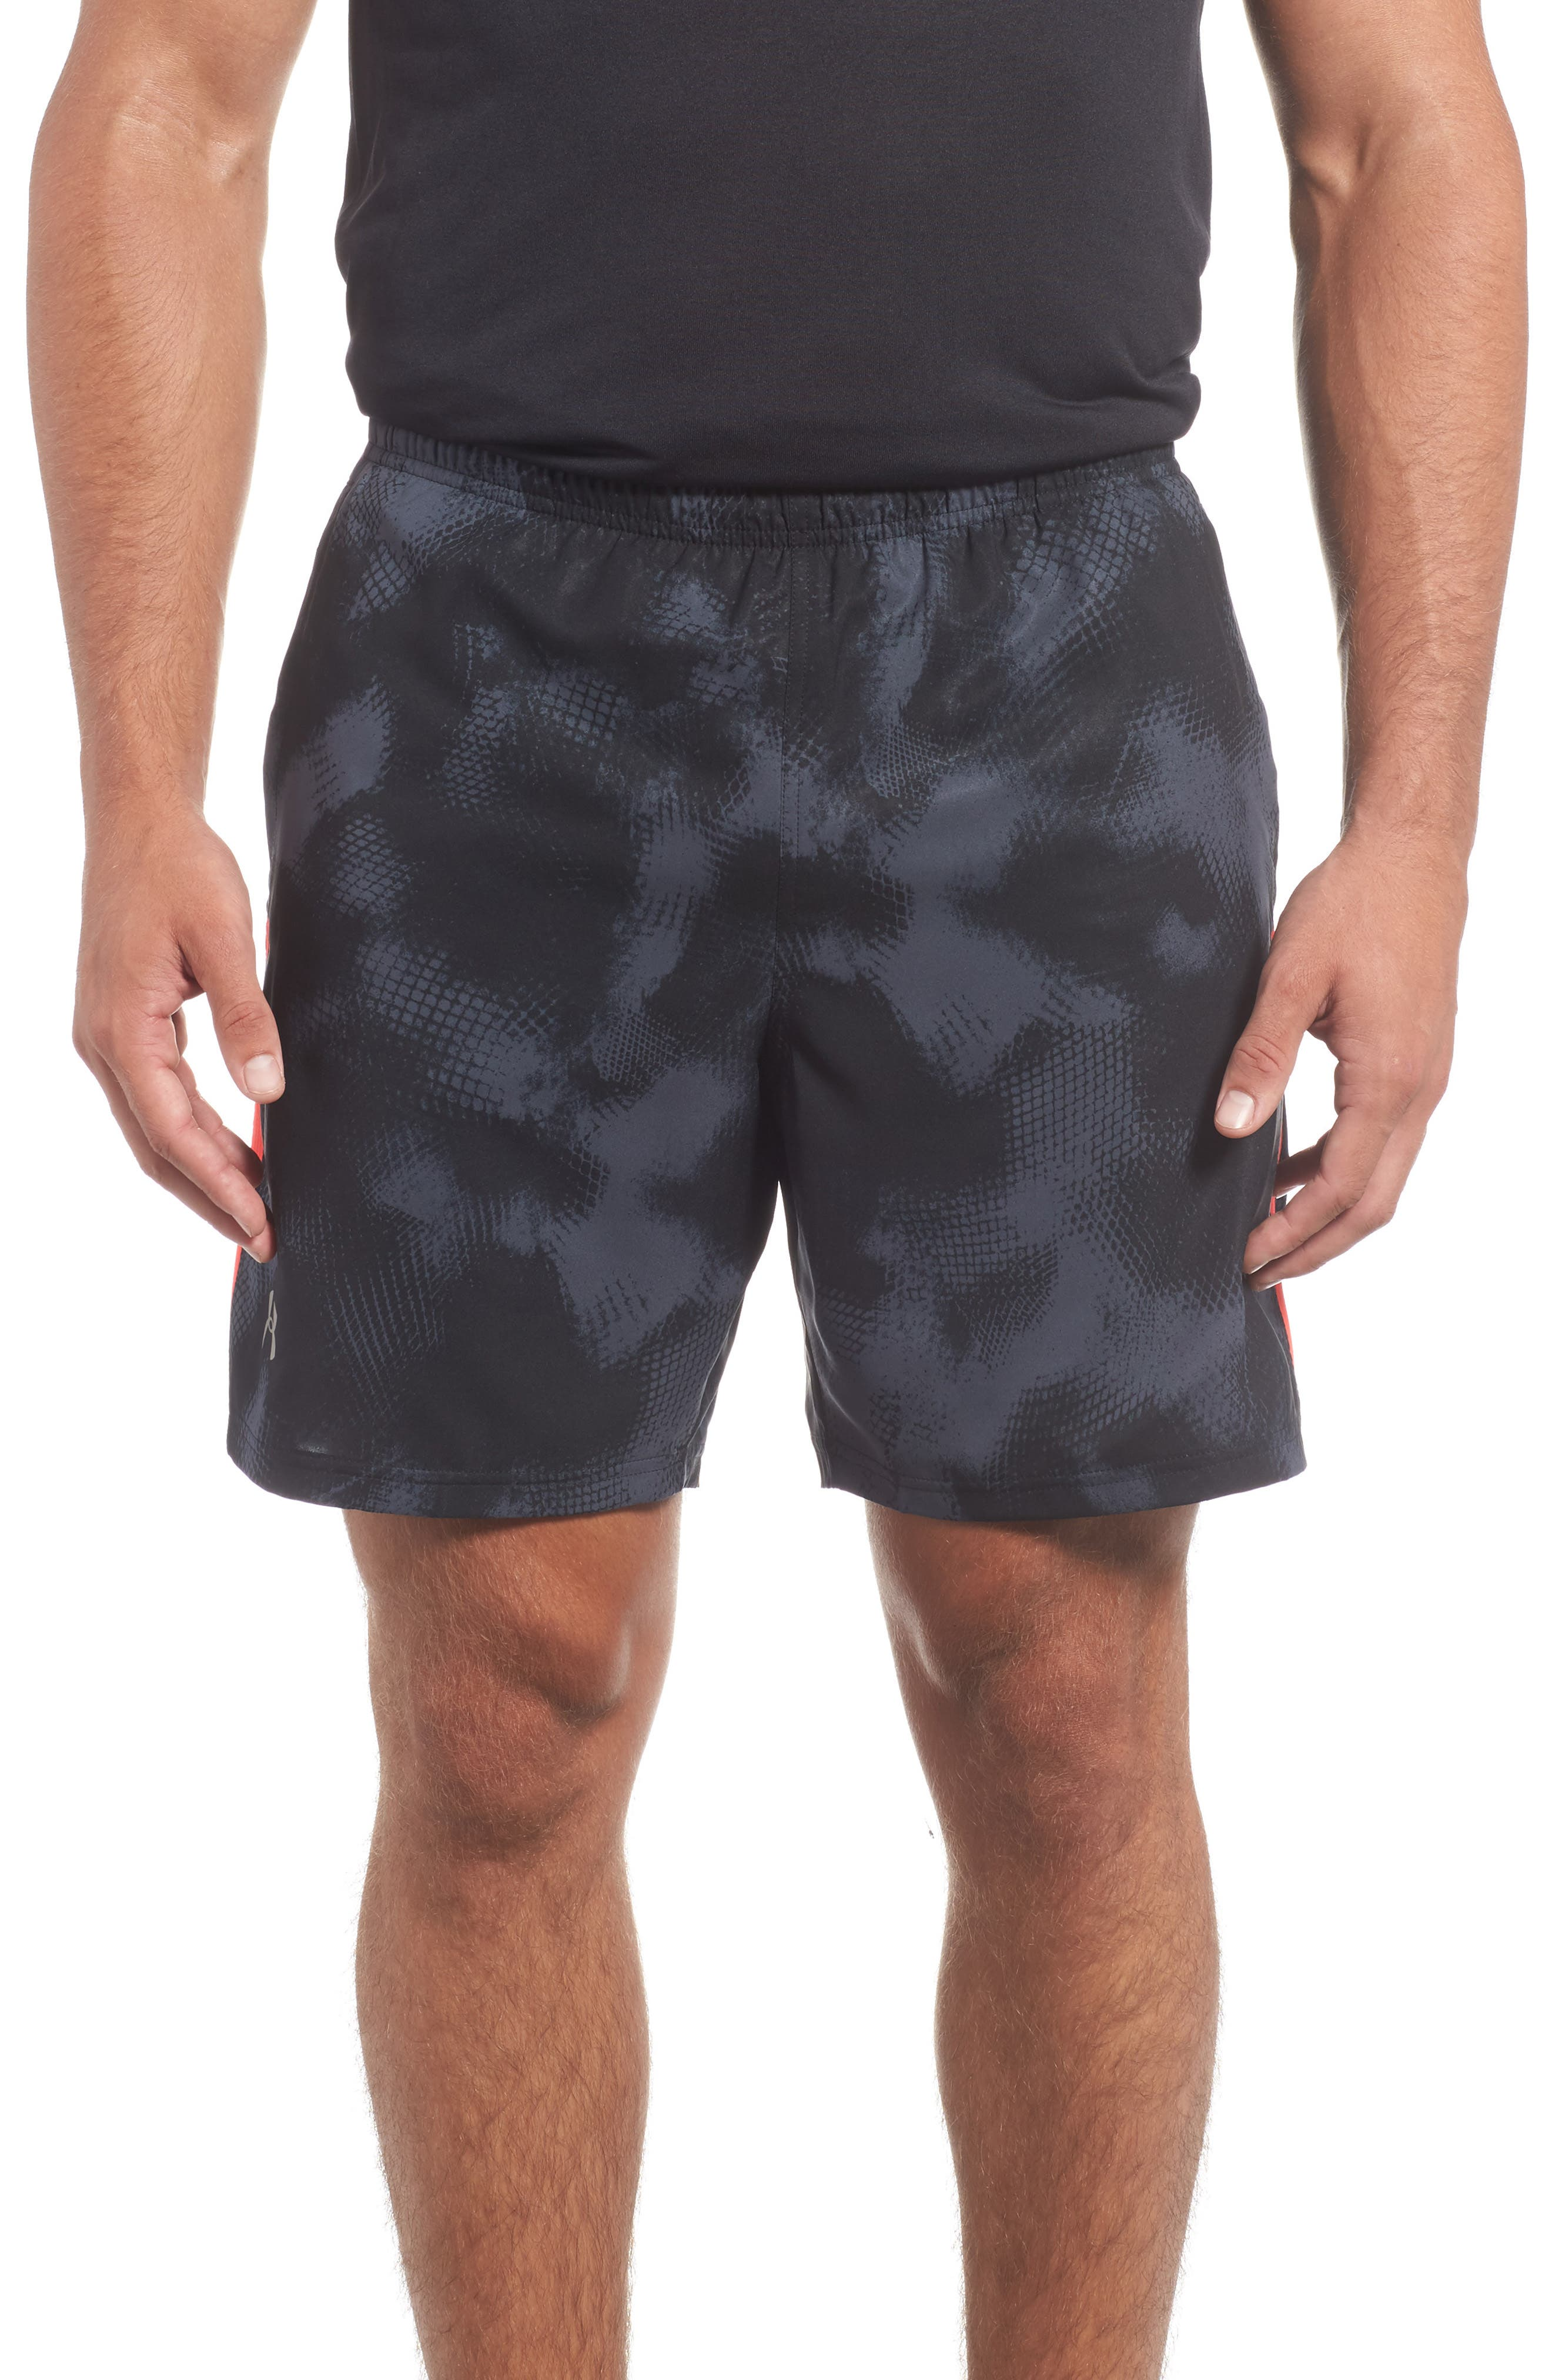 Launch Running Shorts,                         Main,                         color, Black/ Red/ Reflective